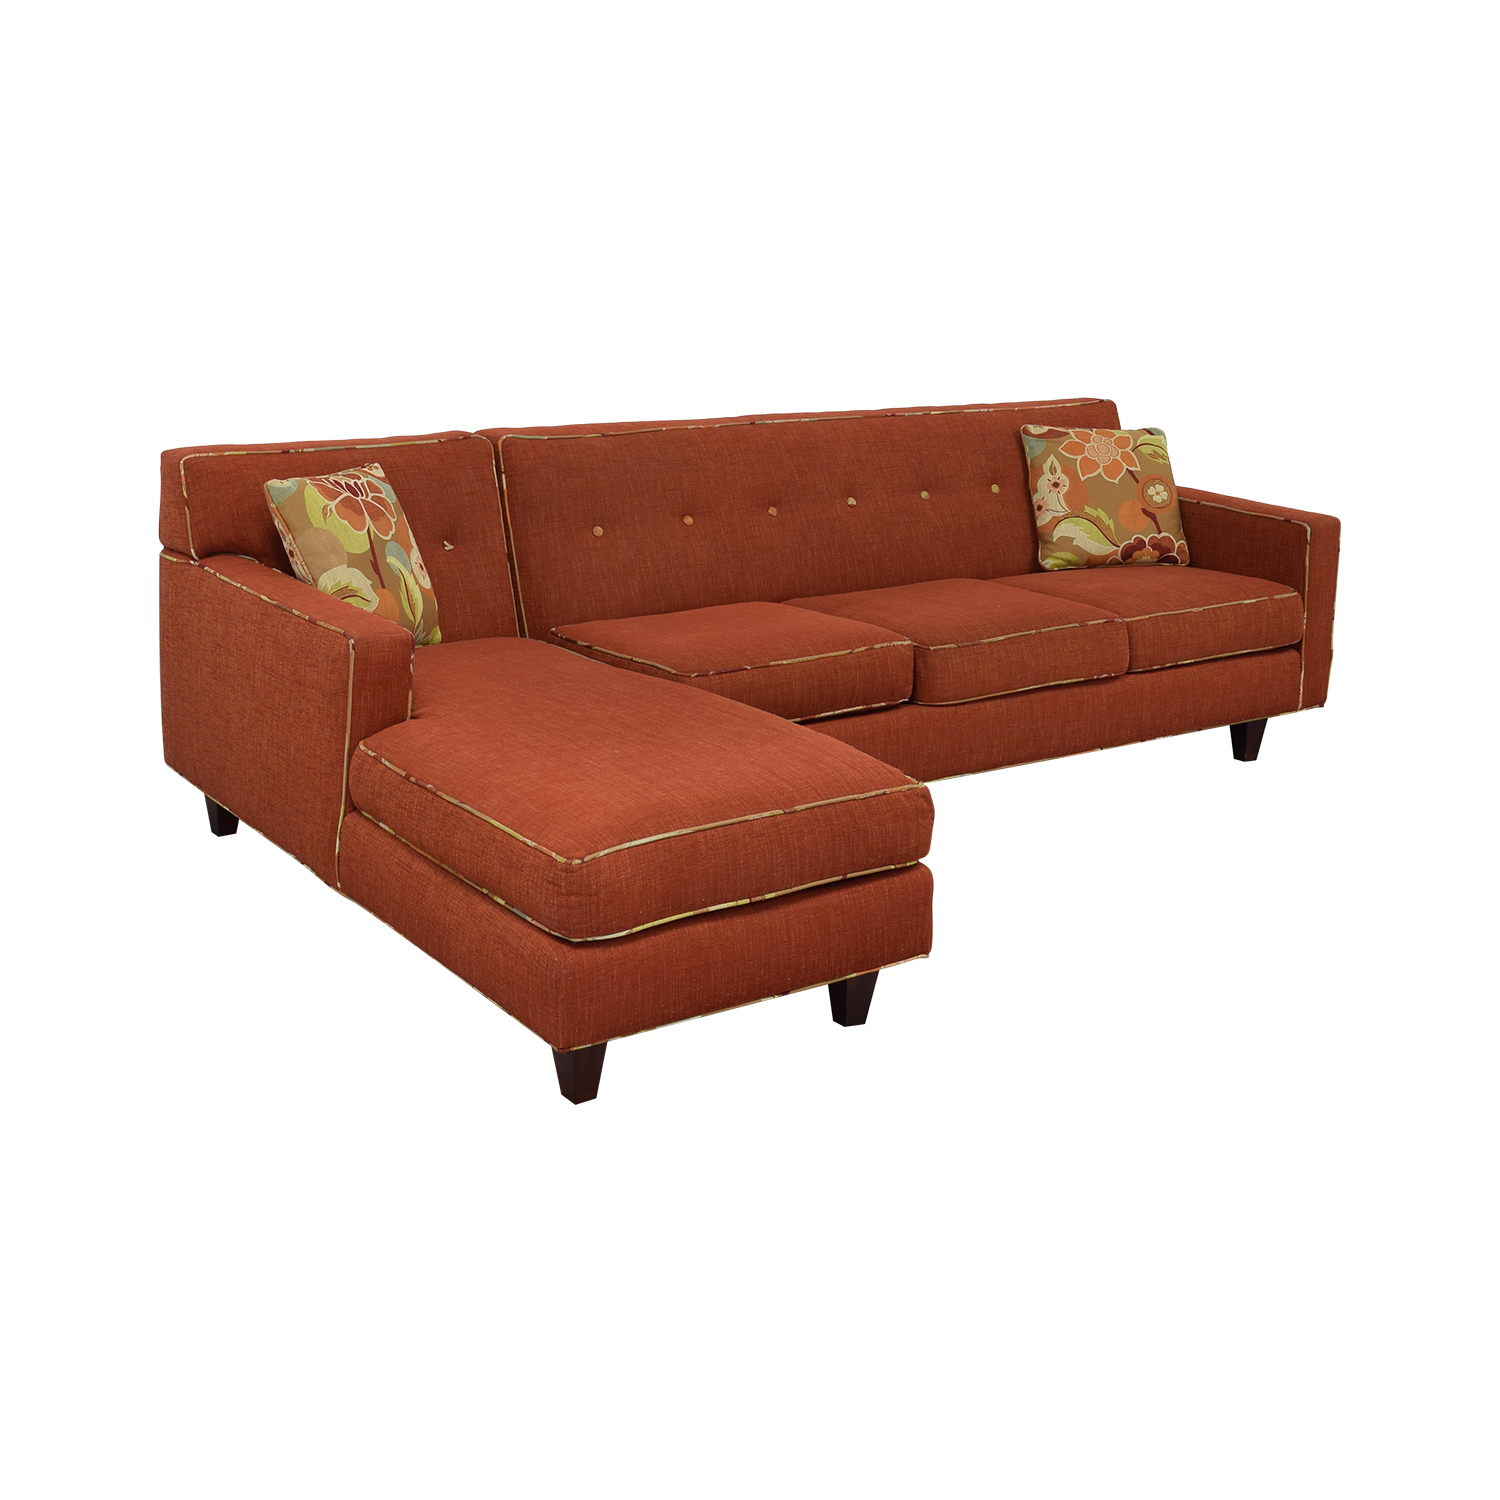 Red Sectional With Chaise and Floral Pillows used